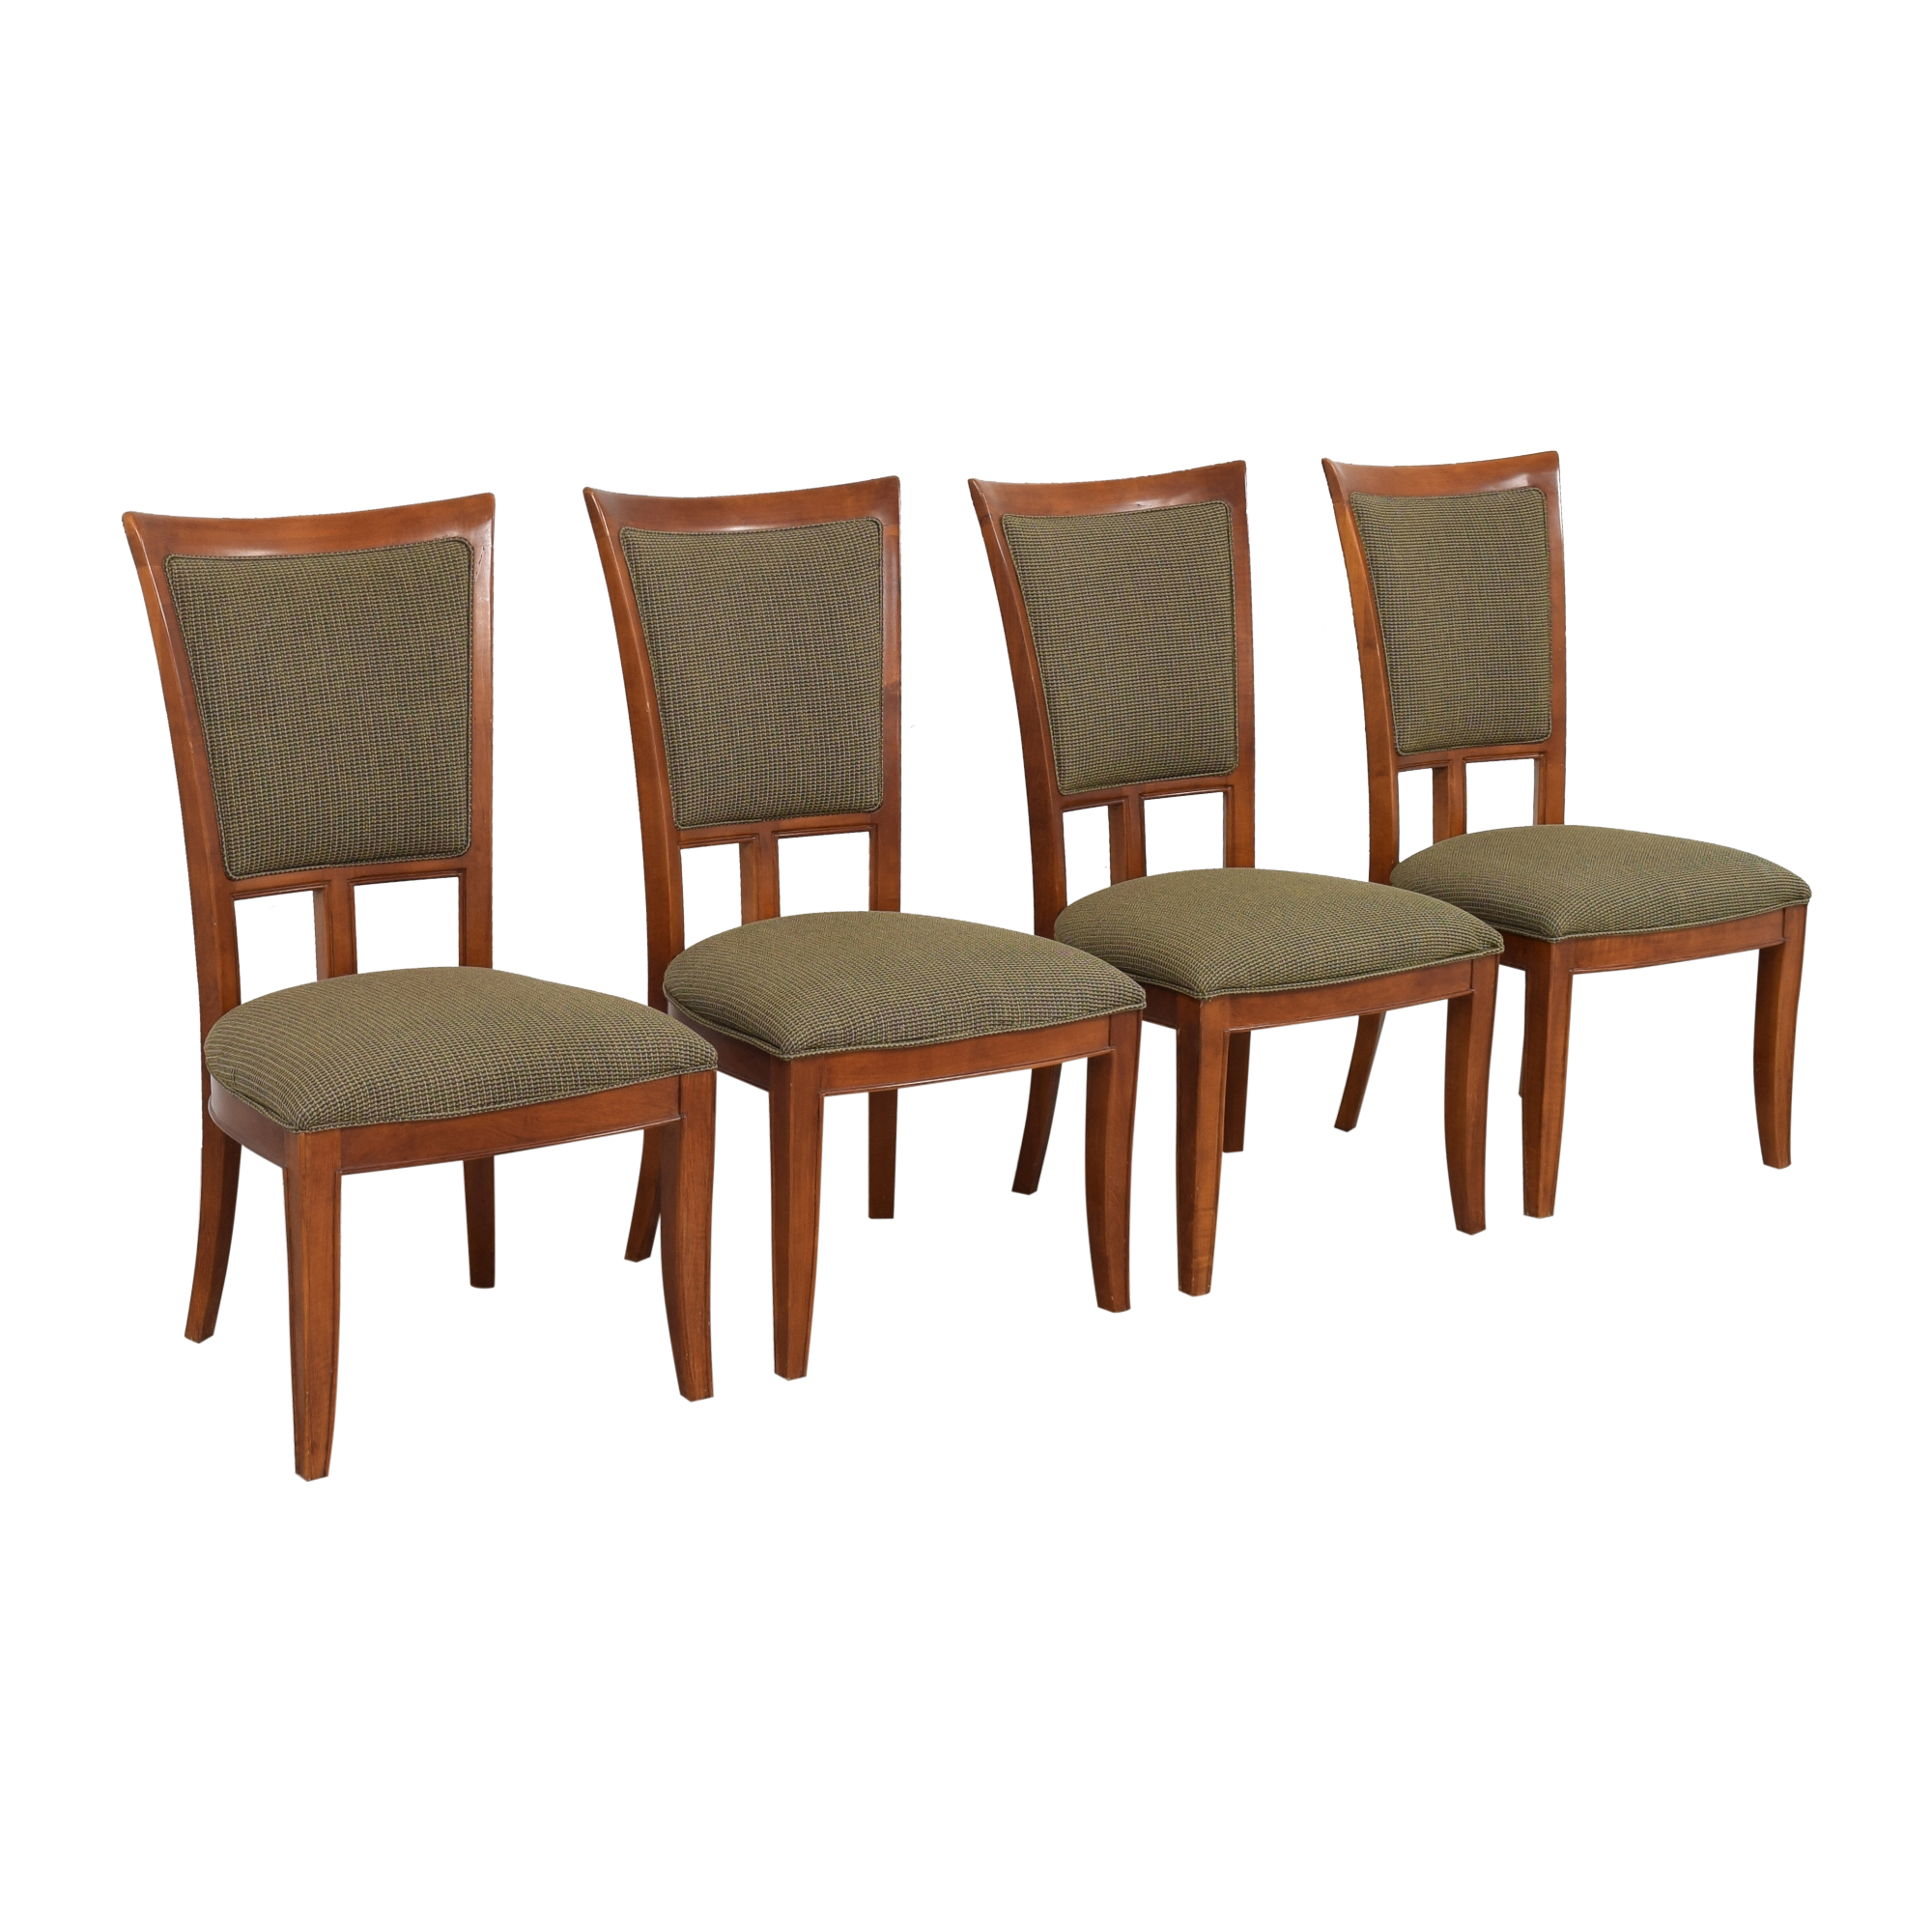 Stanley Furniture Stanley Furniture Upholstered Dining Side Chairs nyc